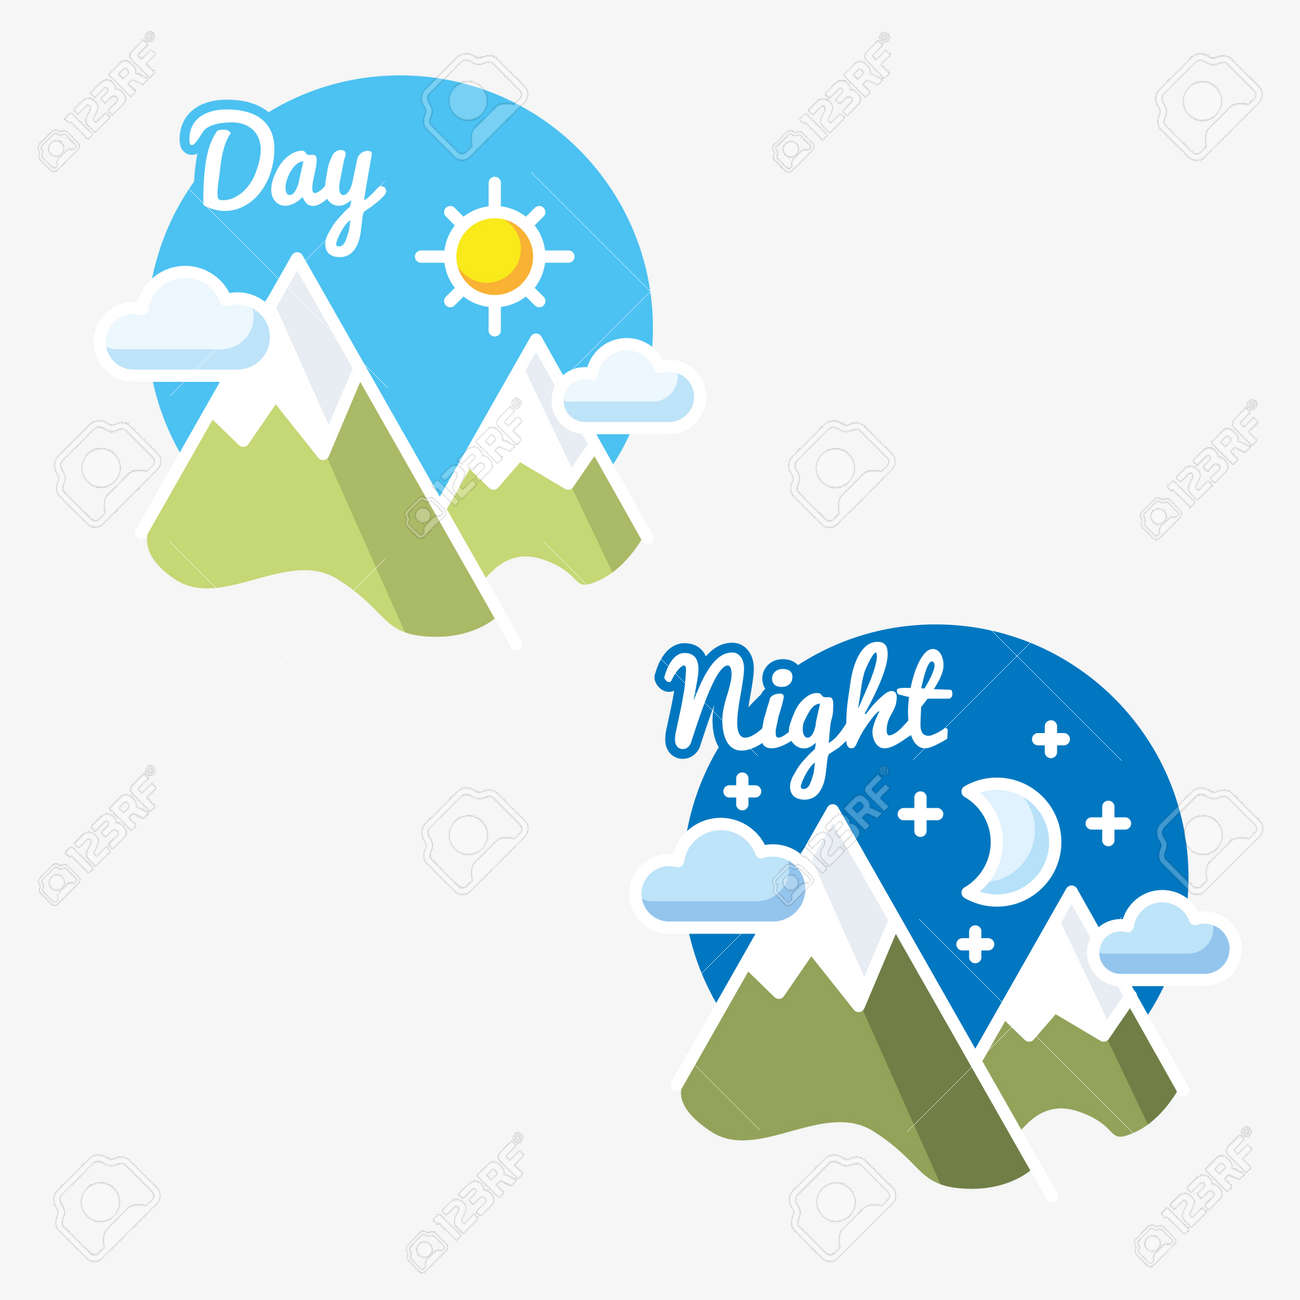 Day and night sun moon symbol illustration royalty free cliparts day and night sun moon symbol illustration stock vector 80193749 biocorpaavc Images